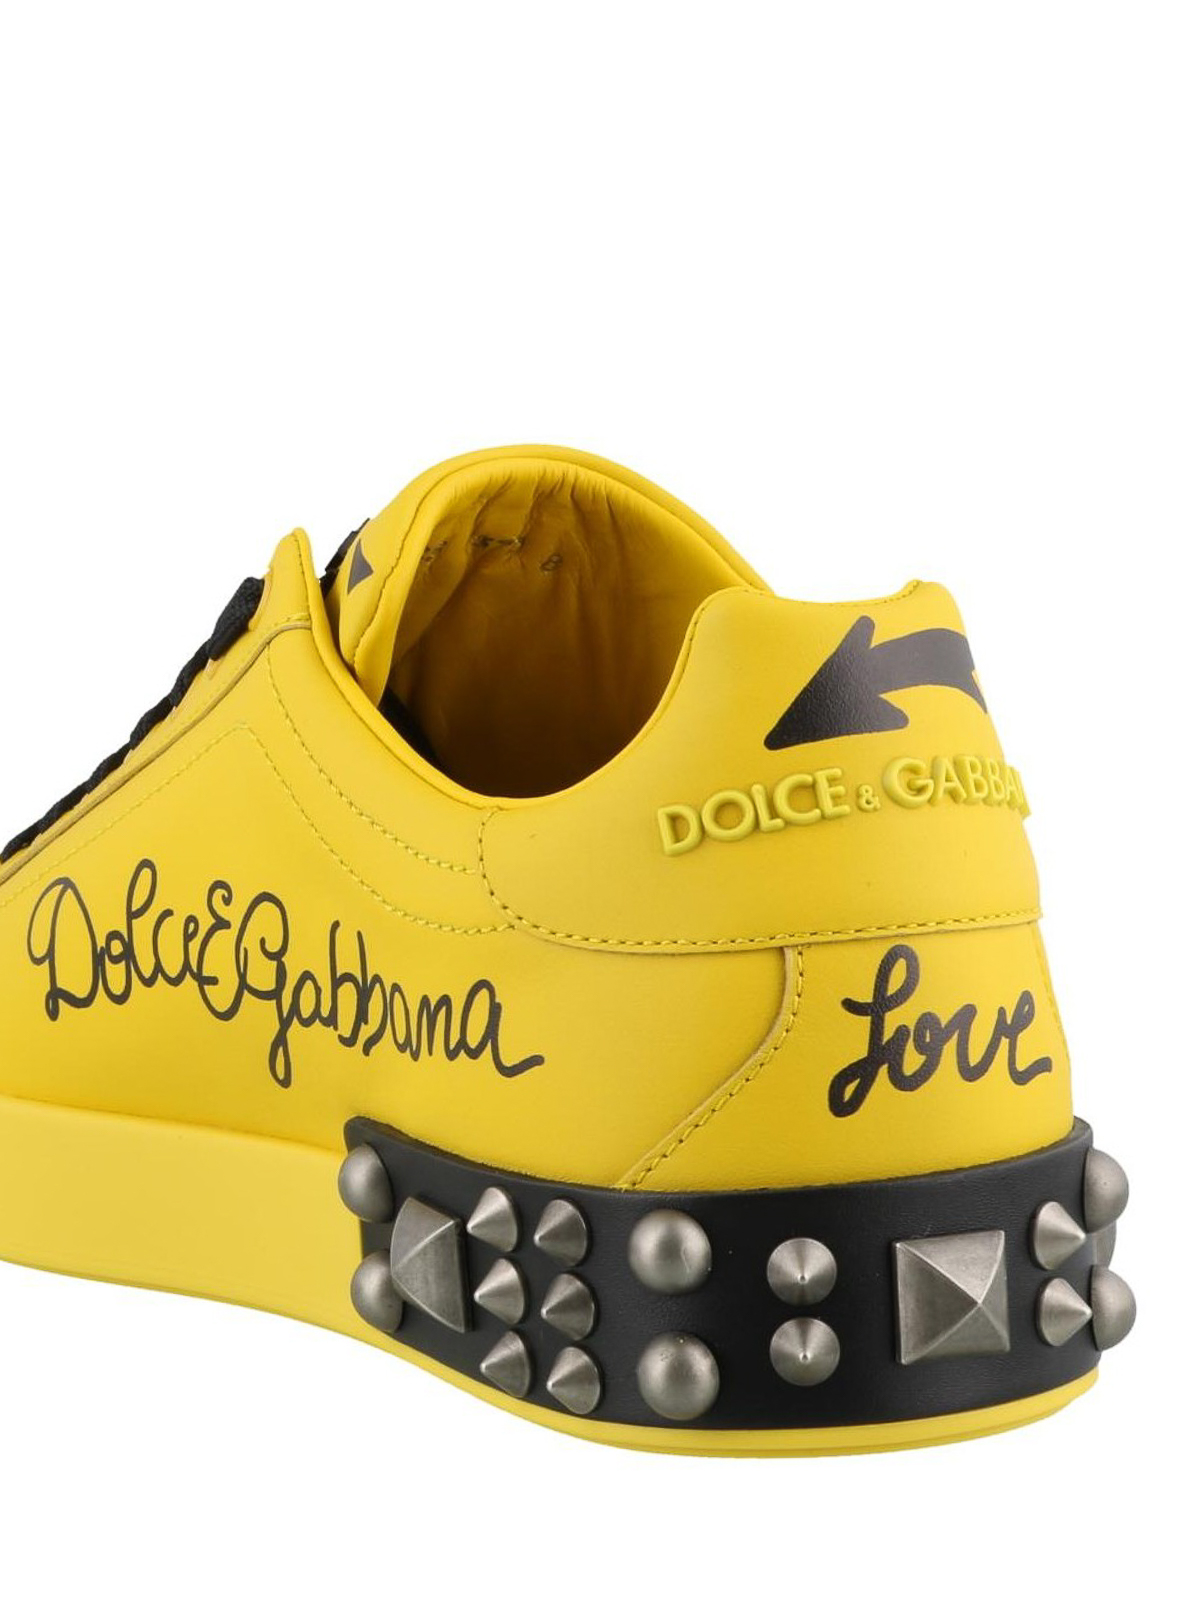 88ff16fc9fb8 Dolce   Gabbana - Patch detail Portofino yellow sneakers - trainers ...